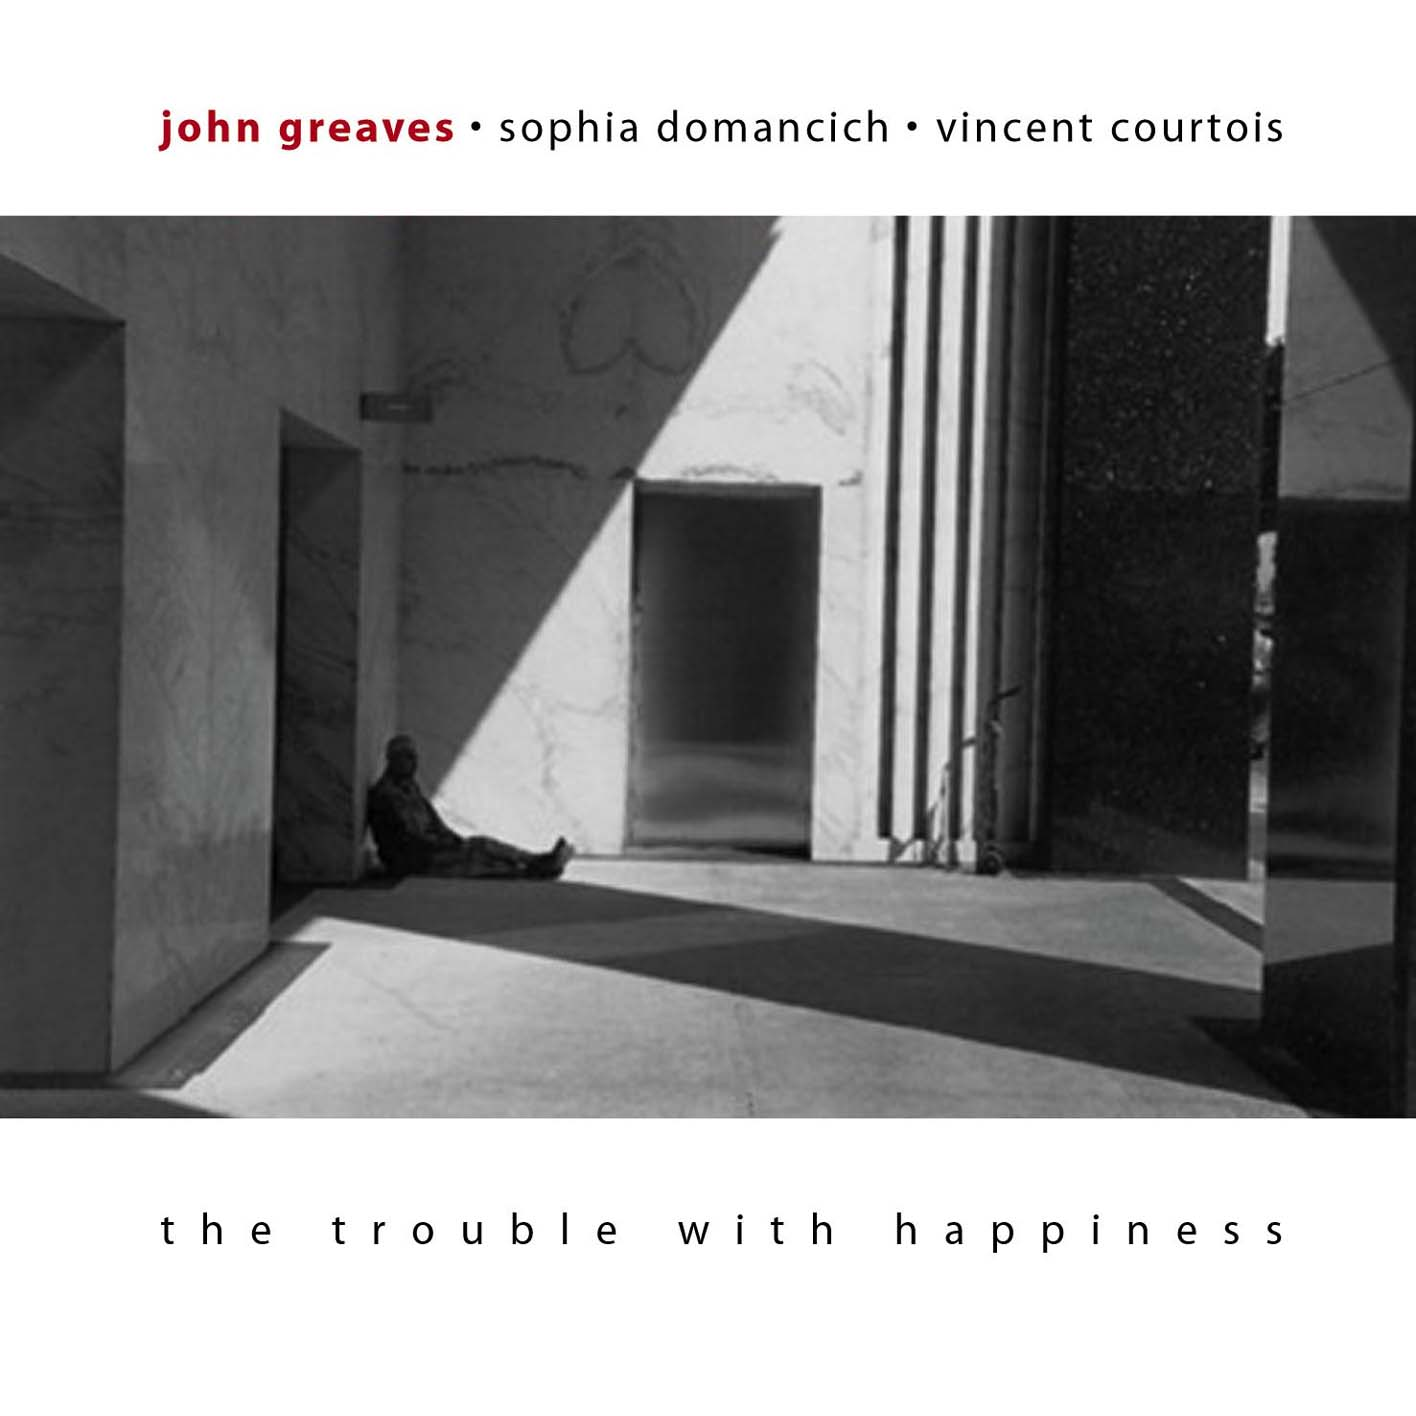 John Greaves / Sophia Domancich / Vincent Courtois — The Trouble with Happiness